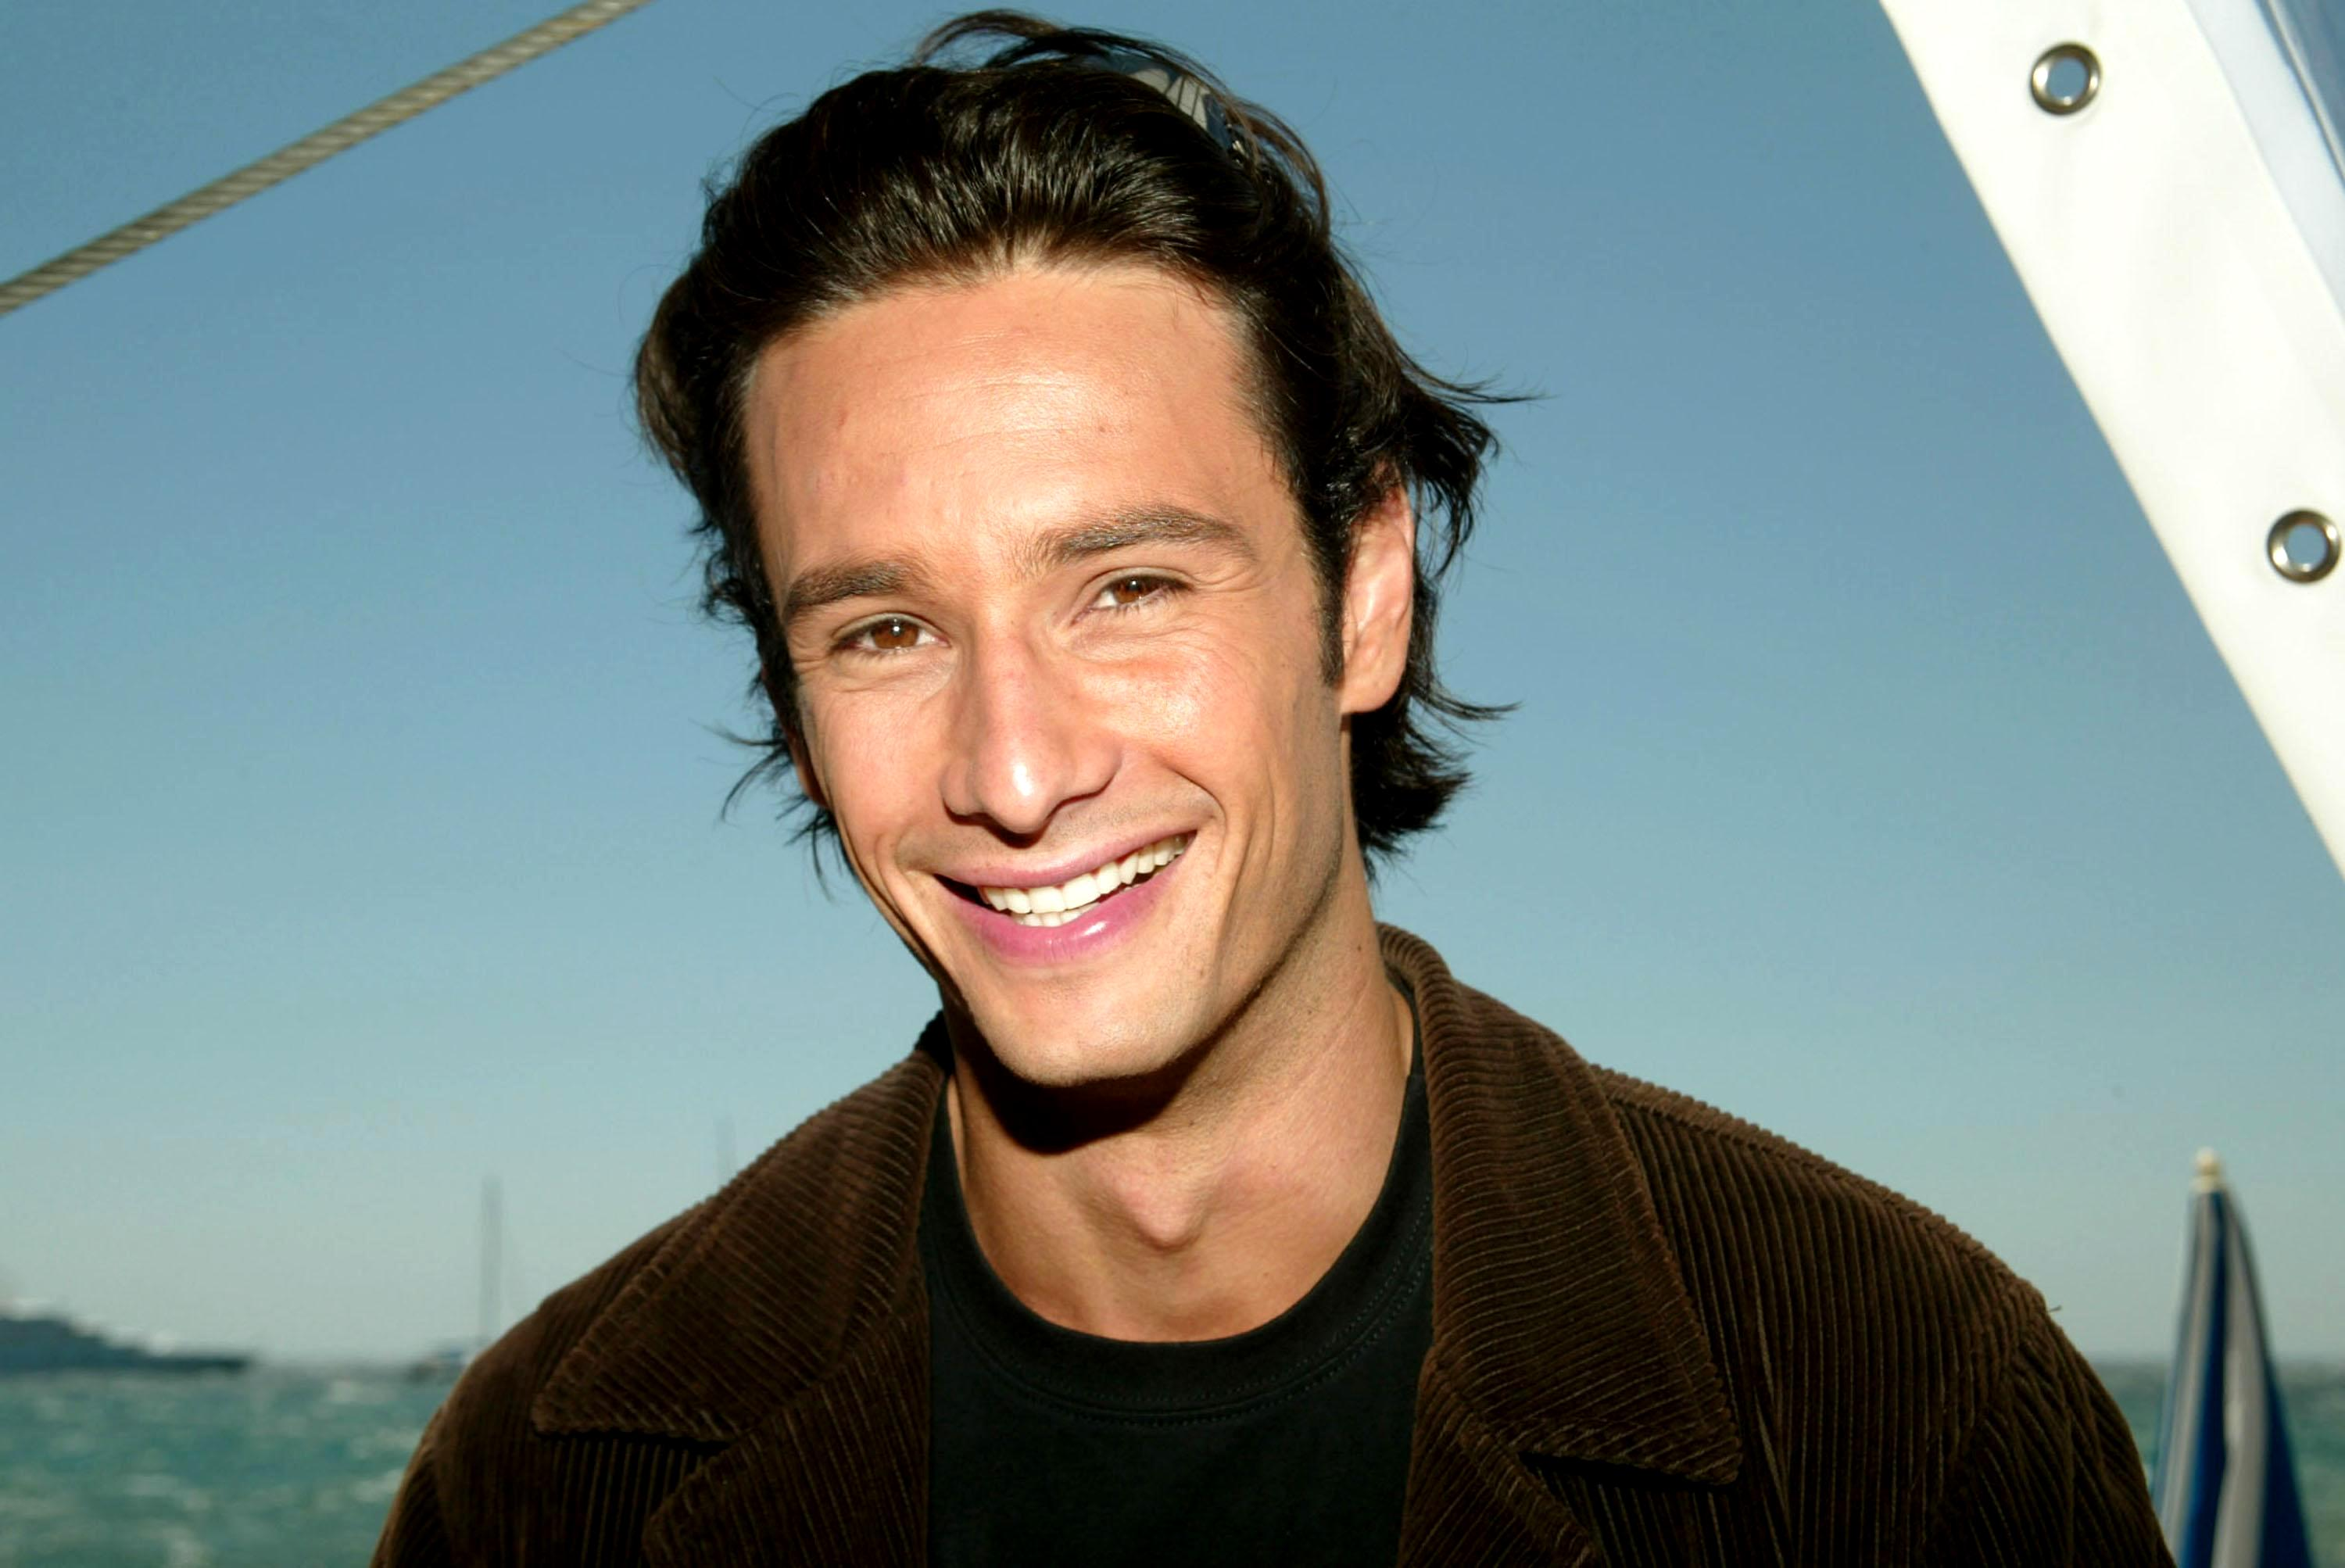 New Amazing Rodrigo Santoro hd wallpaper Wallpaper